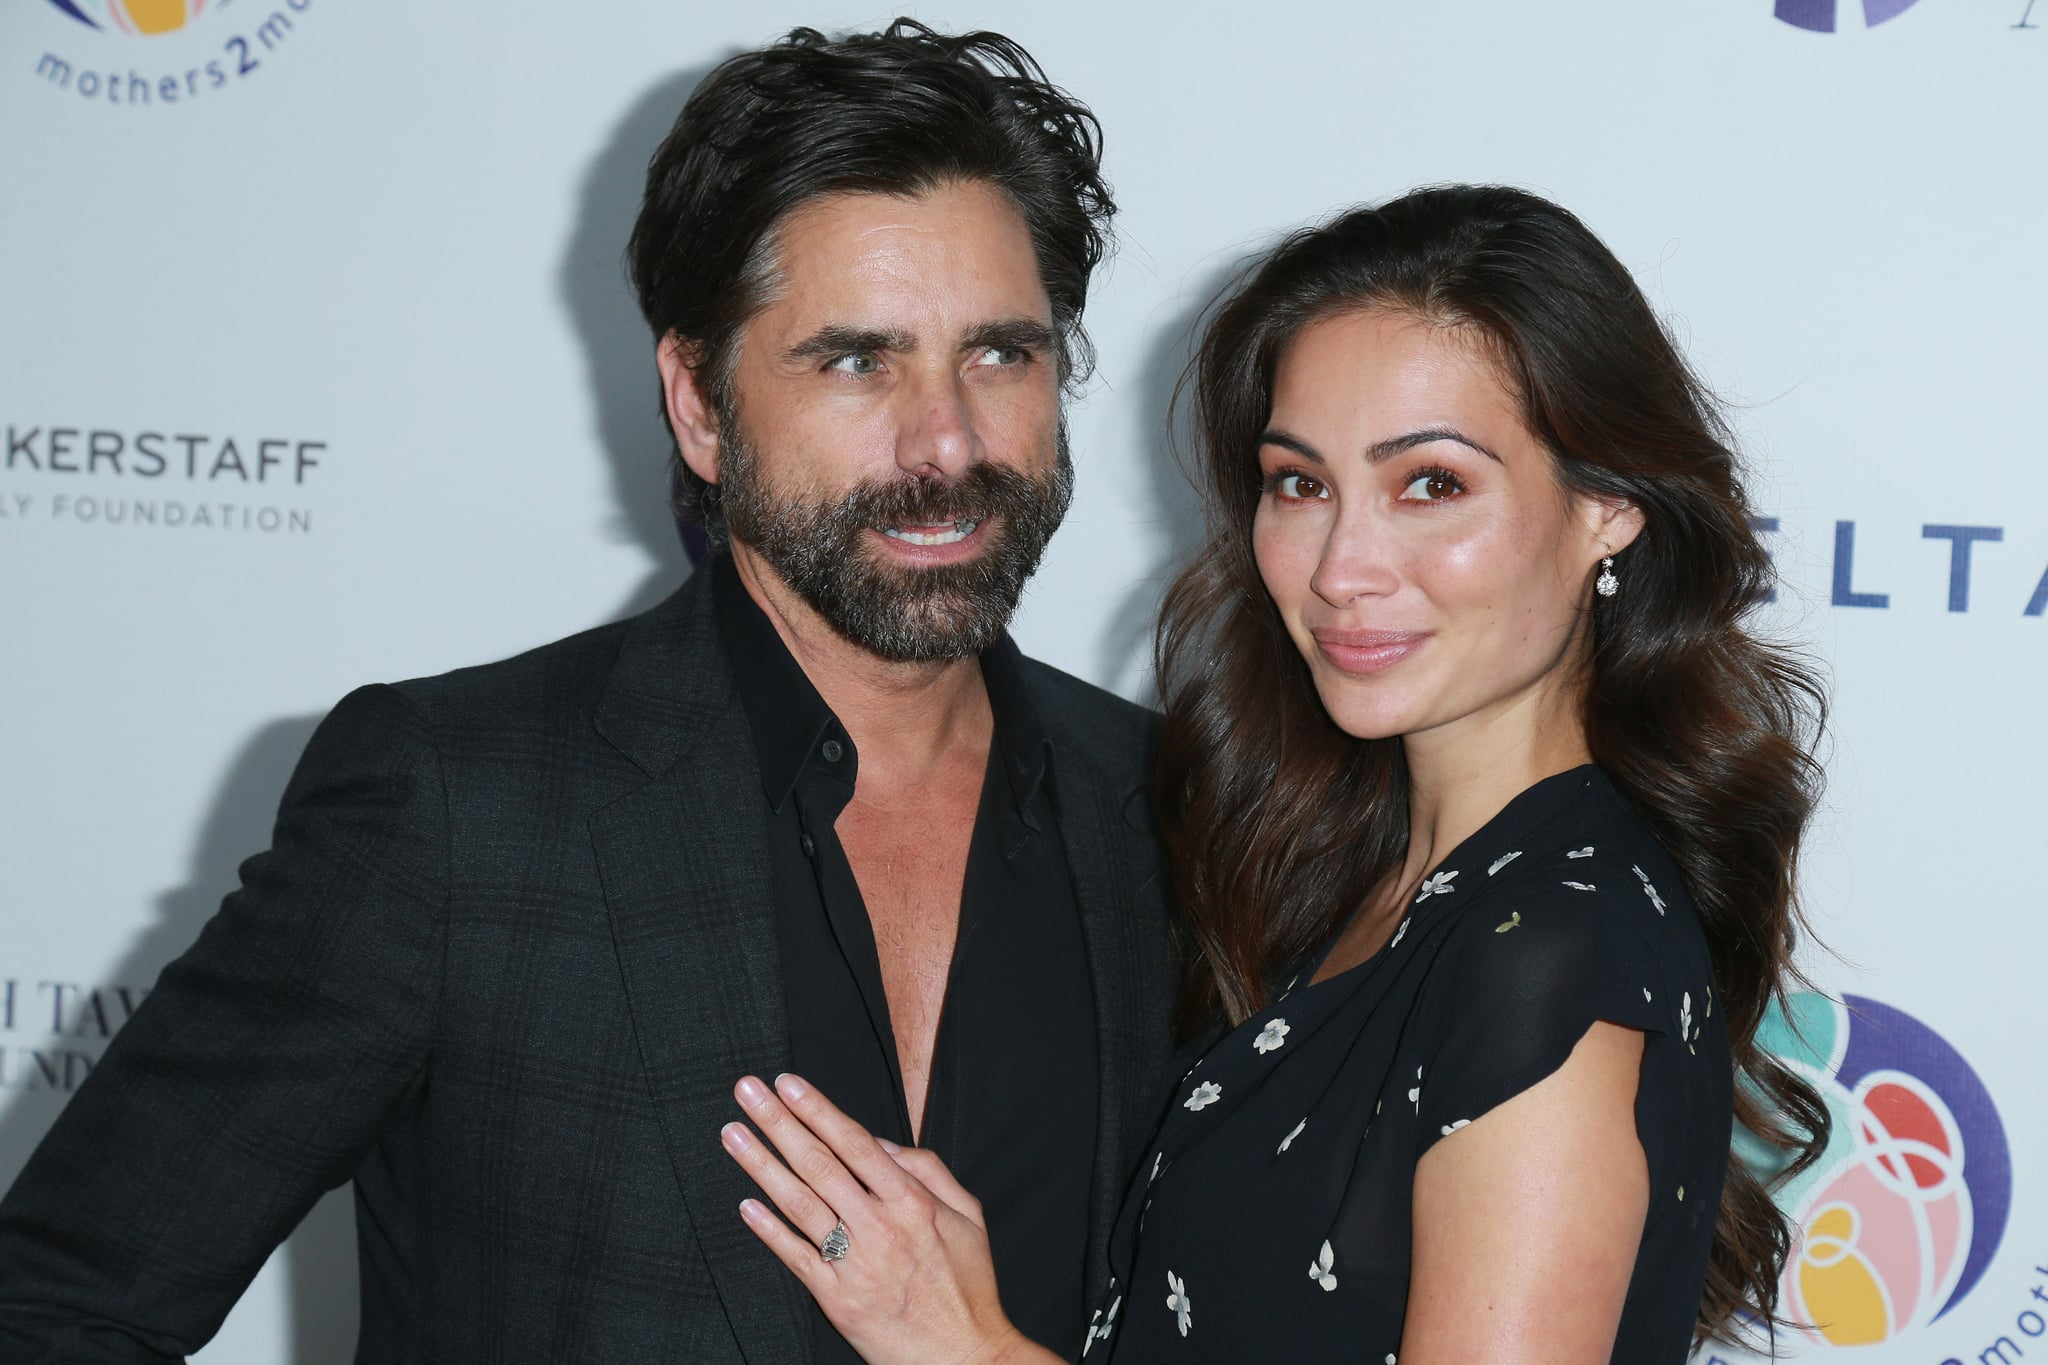 BEVERLY HILLS, CA - OCTOBER 24:  Actor John Stamos (L) and fiancee Caitlin McHugh attends the Zac Posen And Paris Jackson Host Event Supporting mothers2mothers And ETAF on October 24, 2017 in Beverly Hills, California.  (Photo by Leon Bennett/WireImage)